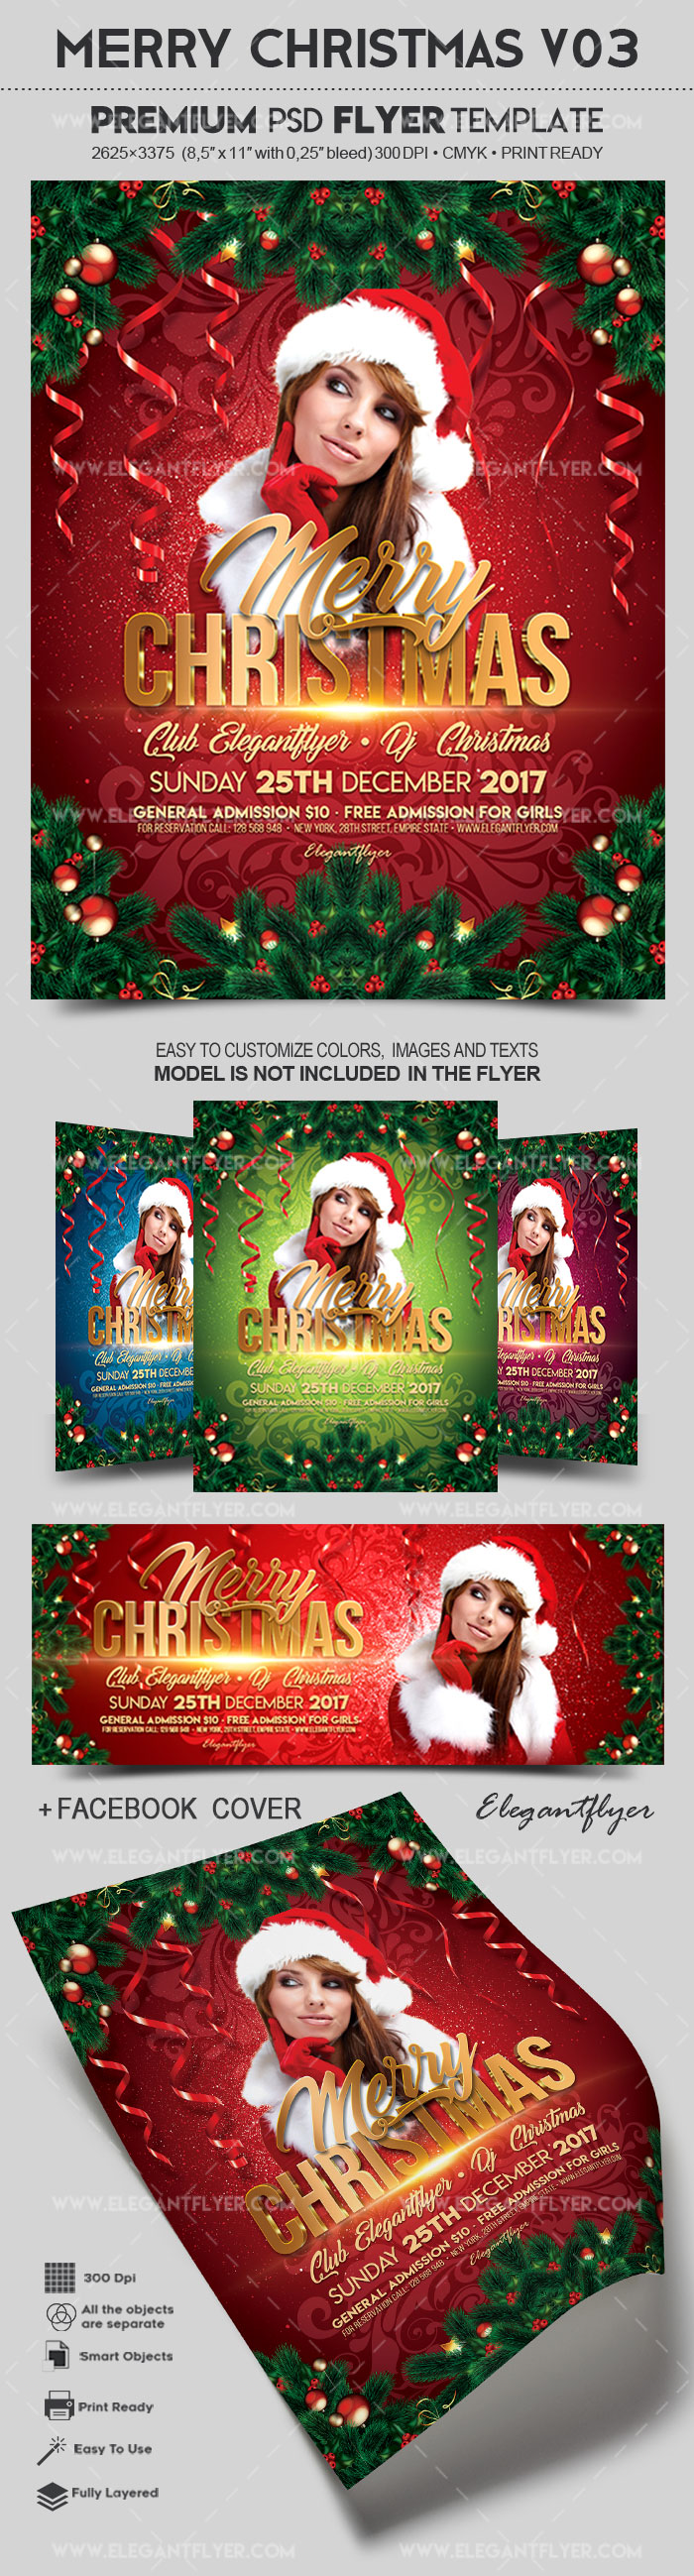 Merry Christmas V03 – Flyer PSD Template + Facebook Cover